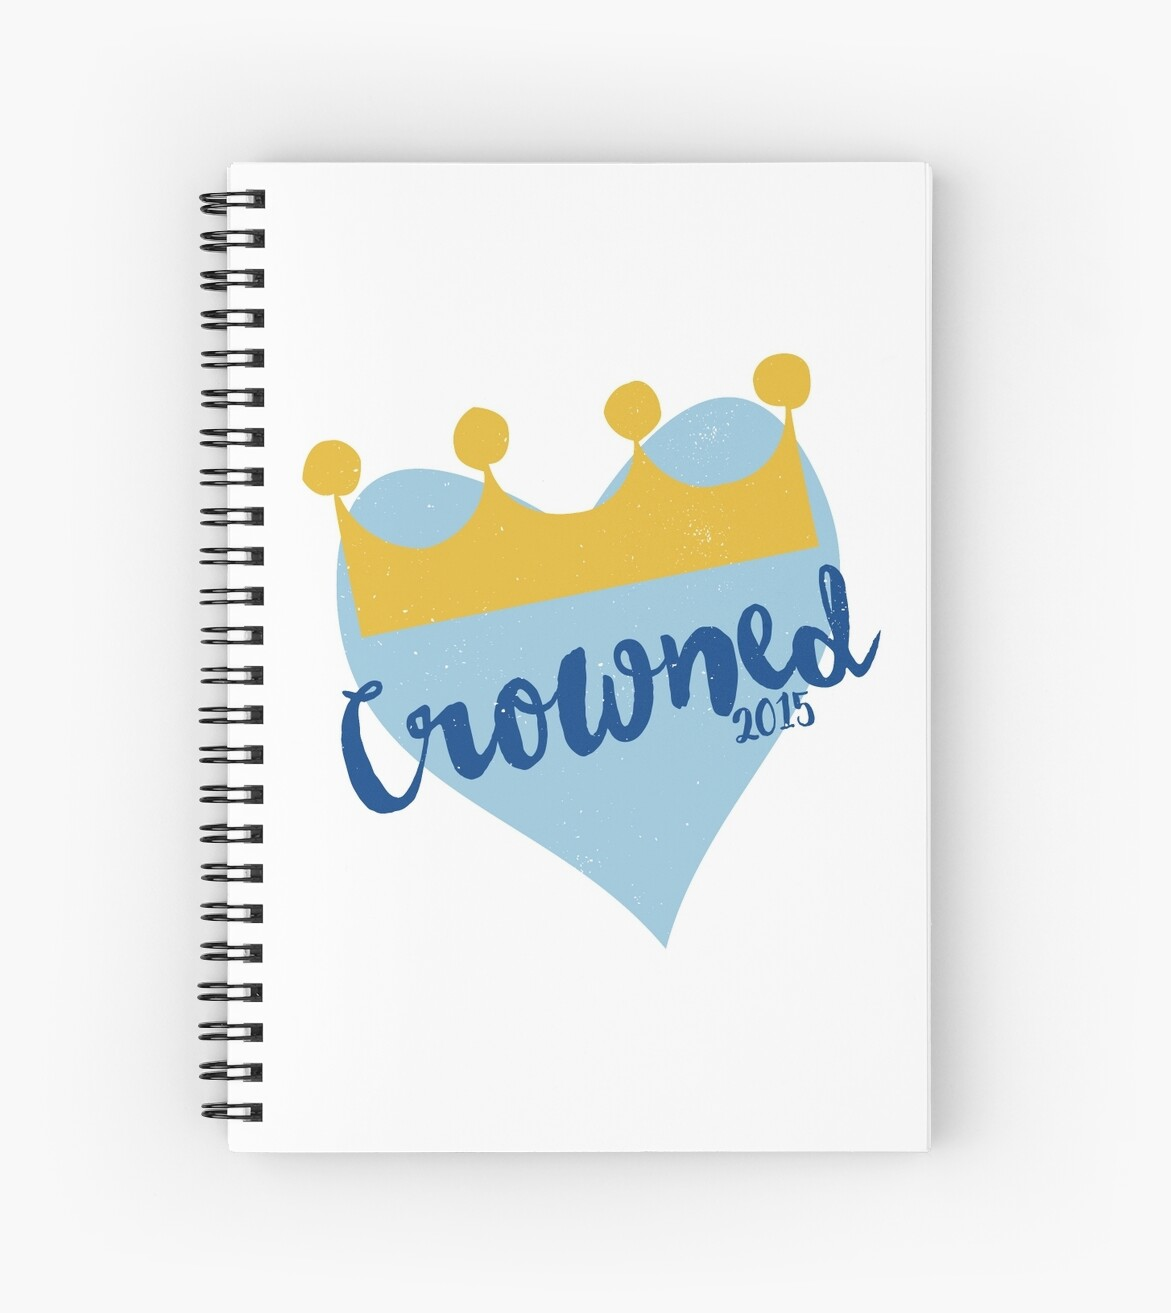 Crowned 2015 by hattieandjane